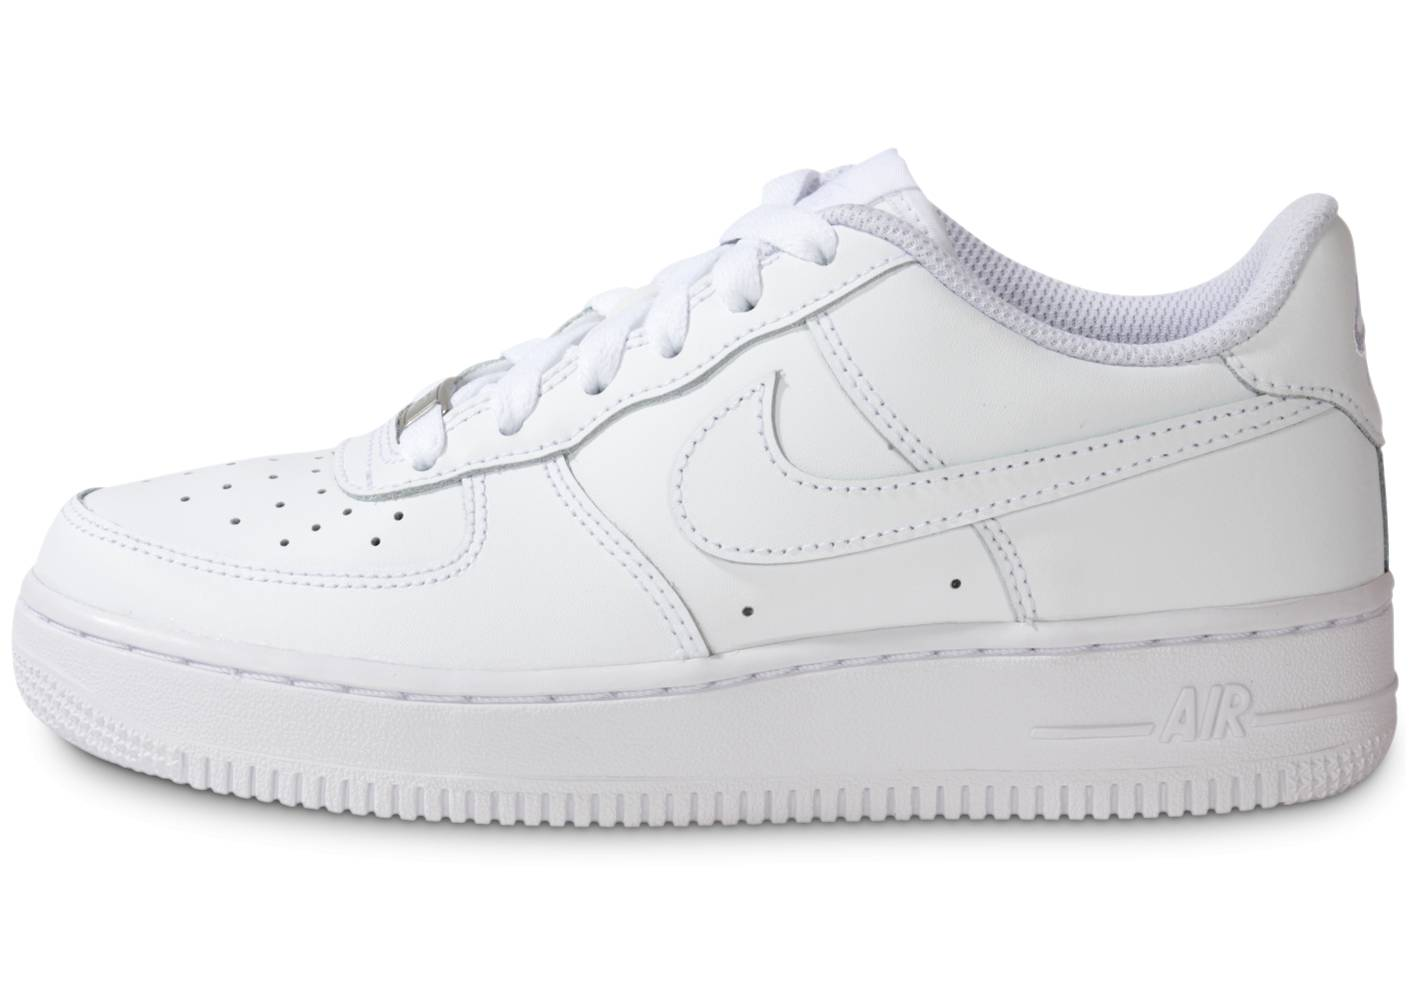 Promotions en cours Nike air force chausport